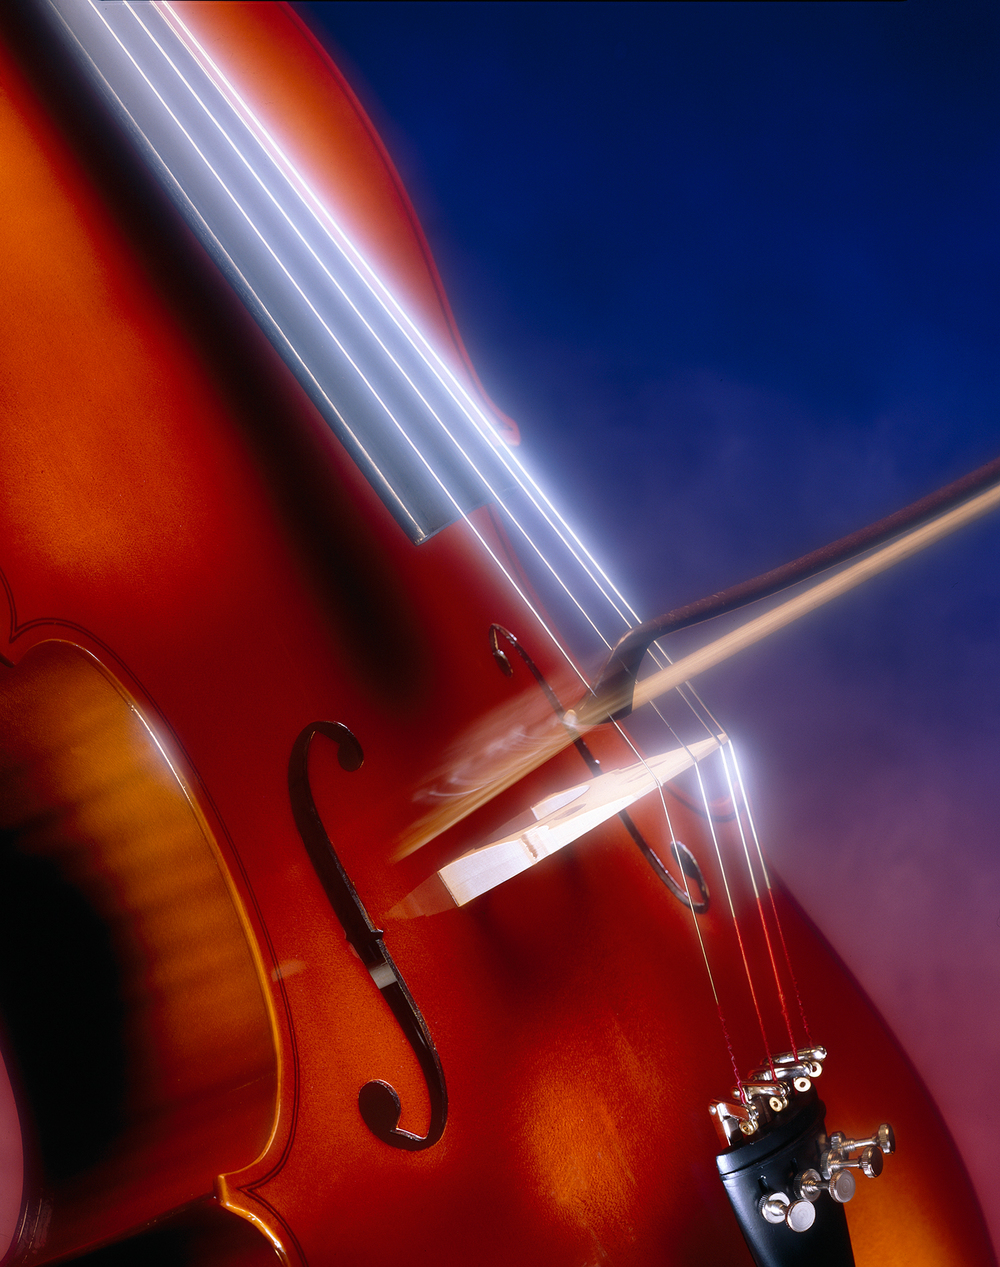 Cello glowing strings.jpg